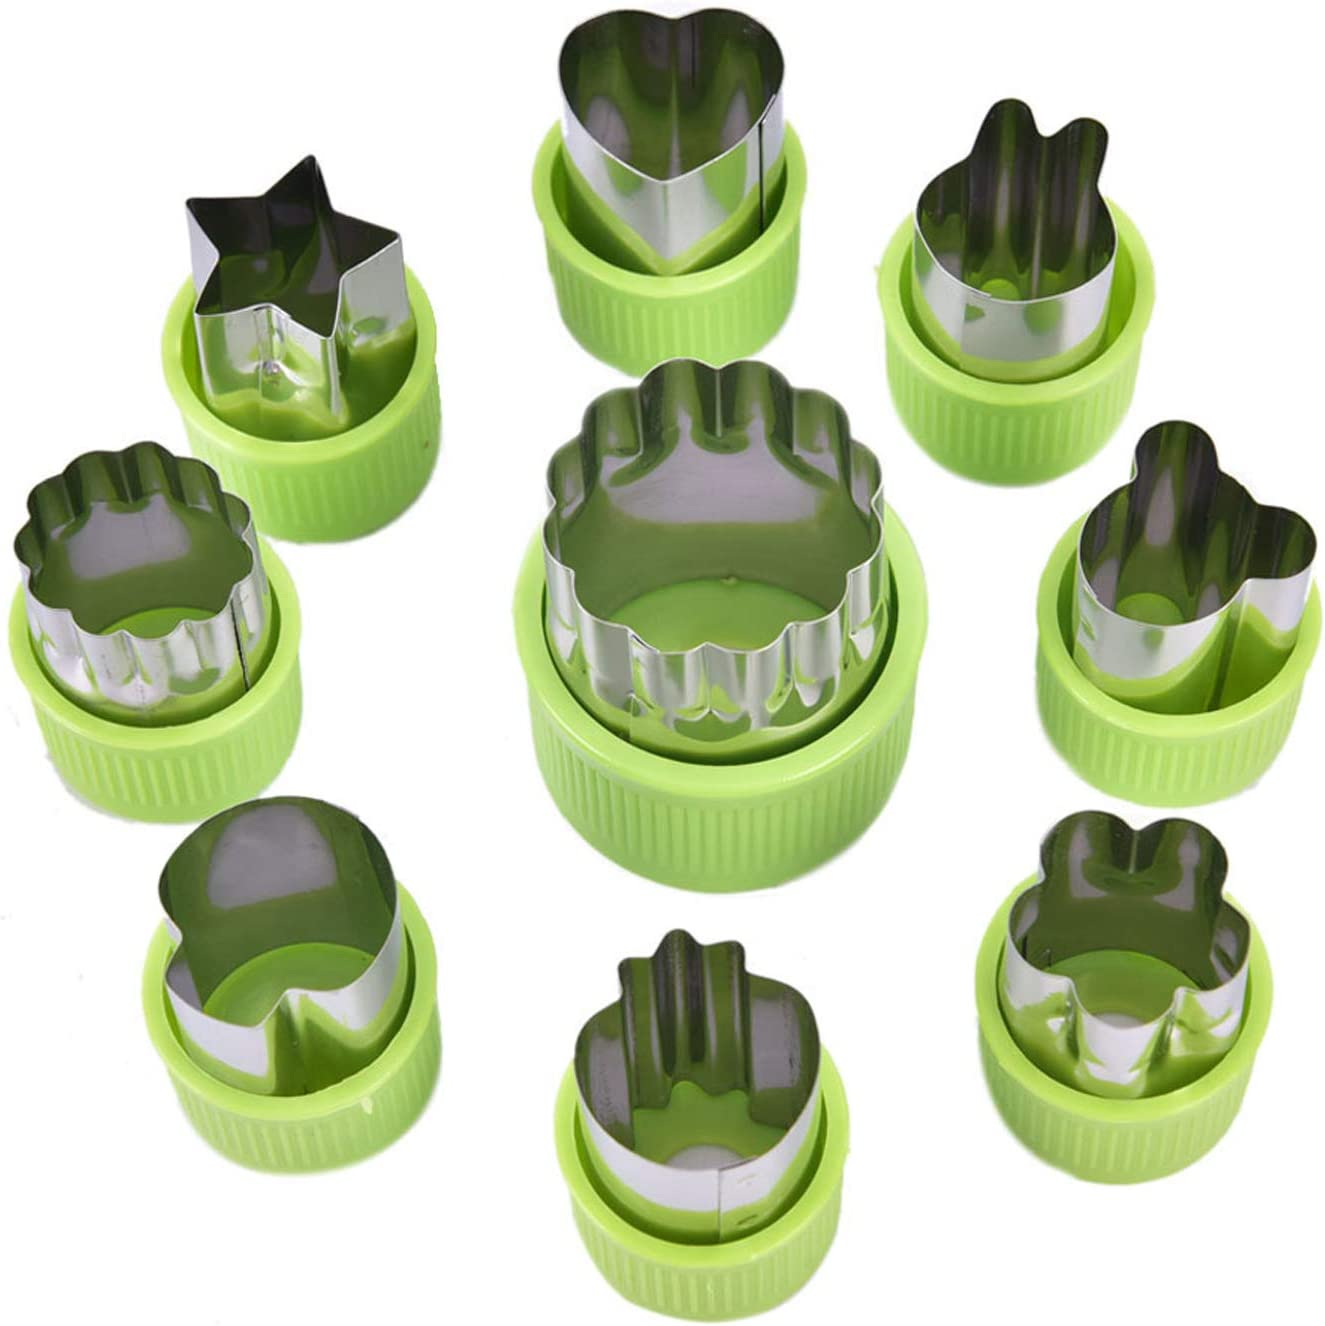 37YIMU Stainless Steel Flower Shape Fruit Vegetable Cutter Shapes Set (9 Piece), Mini Fruit and Cookie Stamps Mold, for Kids Baking and Food Supplement Tools Accessories Crafts for Kitchen, Green